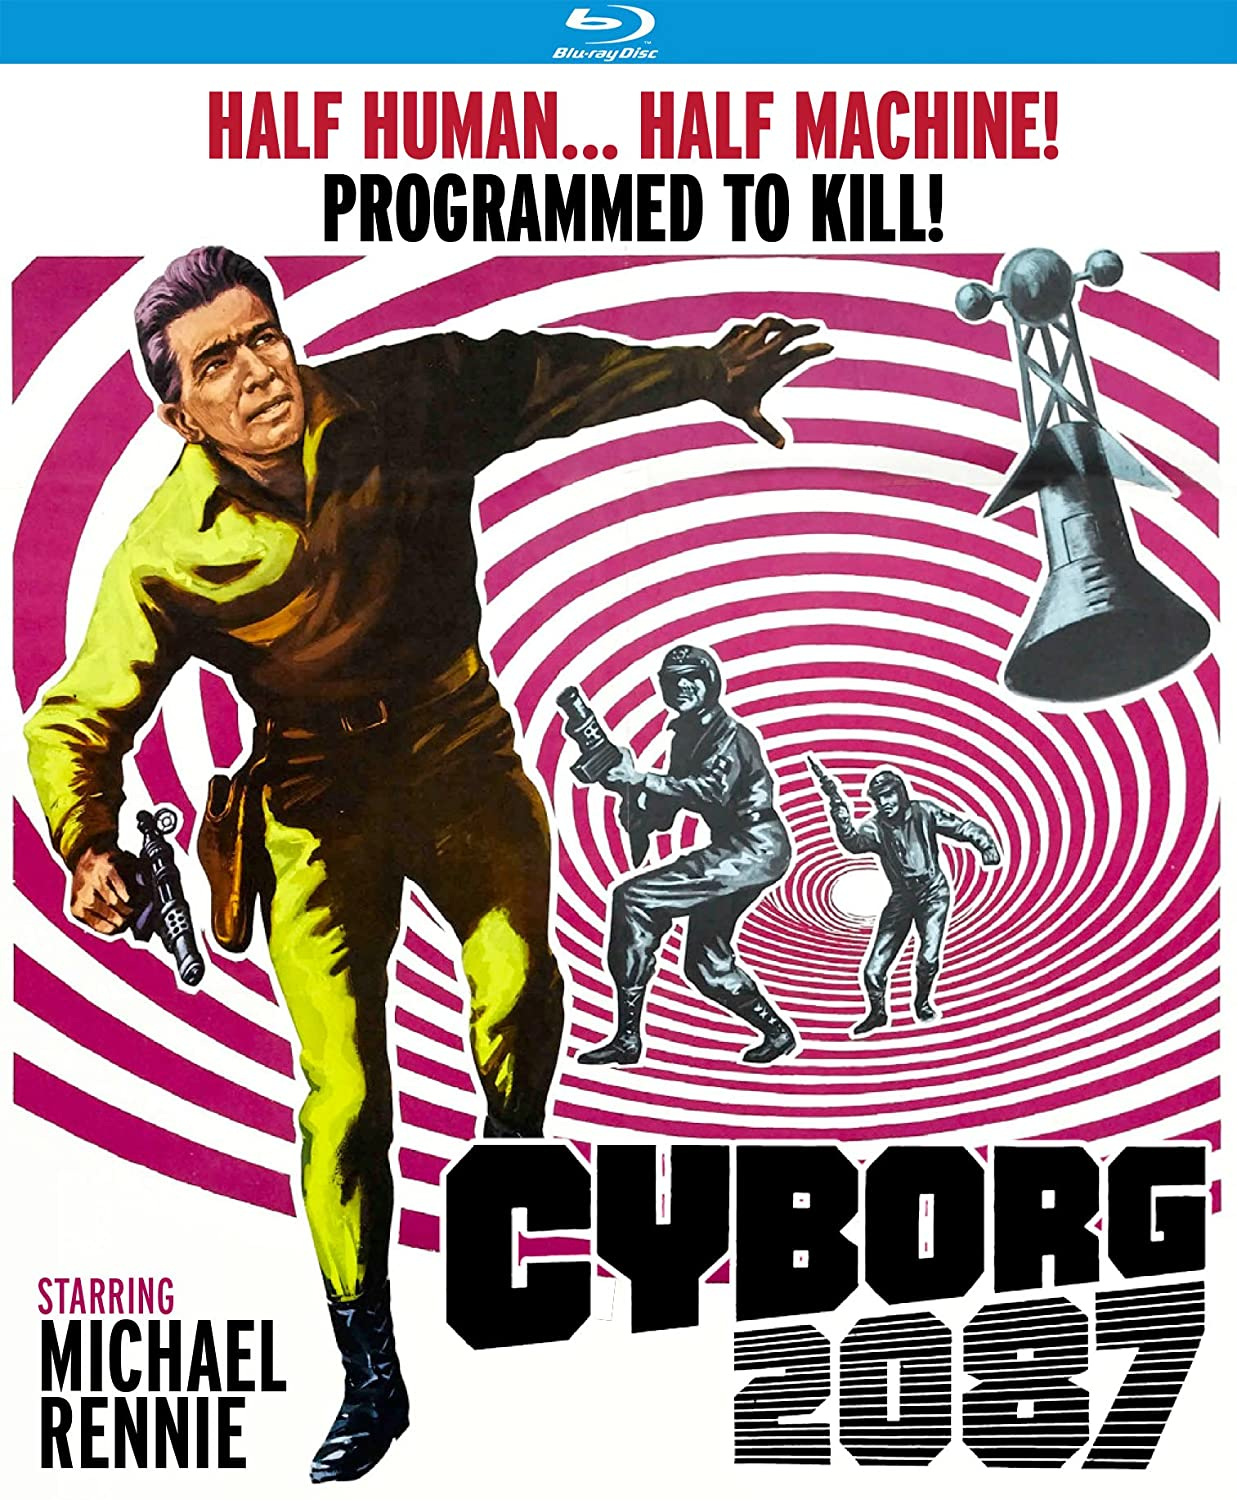 Amazon.com: Cyborg 2087 [Blu-ray]: Michael Rennie, Karen Steele, Wendell  Corey, Warren Stevens, Harry Carey Jr., Eduard Franz, Franklin Adreon:  Movies & TV